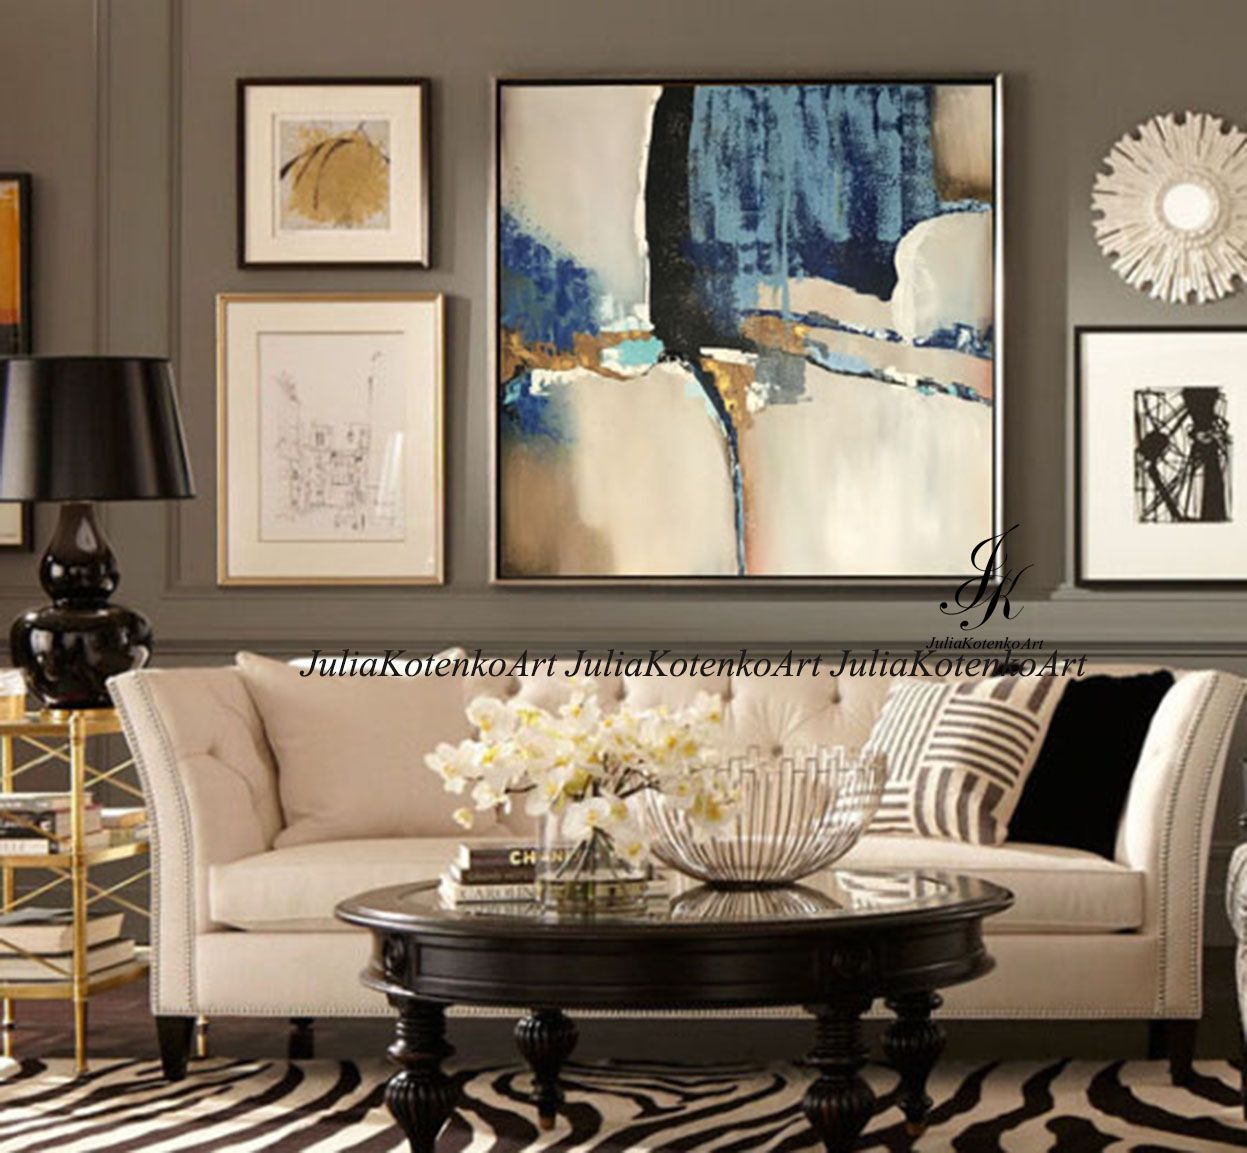 Abstract Acrylic Painting Textured Painting On Canvas By Julia Kotenko Wall Decor Living Room Wall Art Living Room Living Room Art